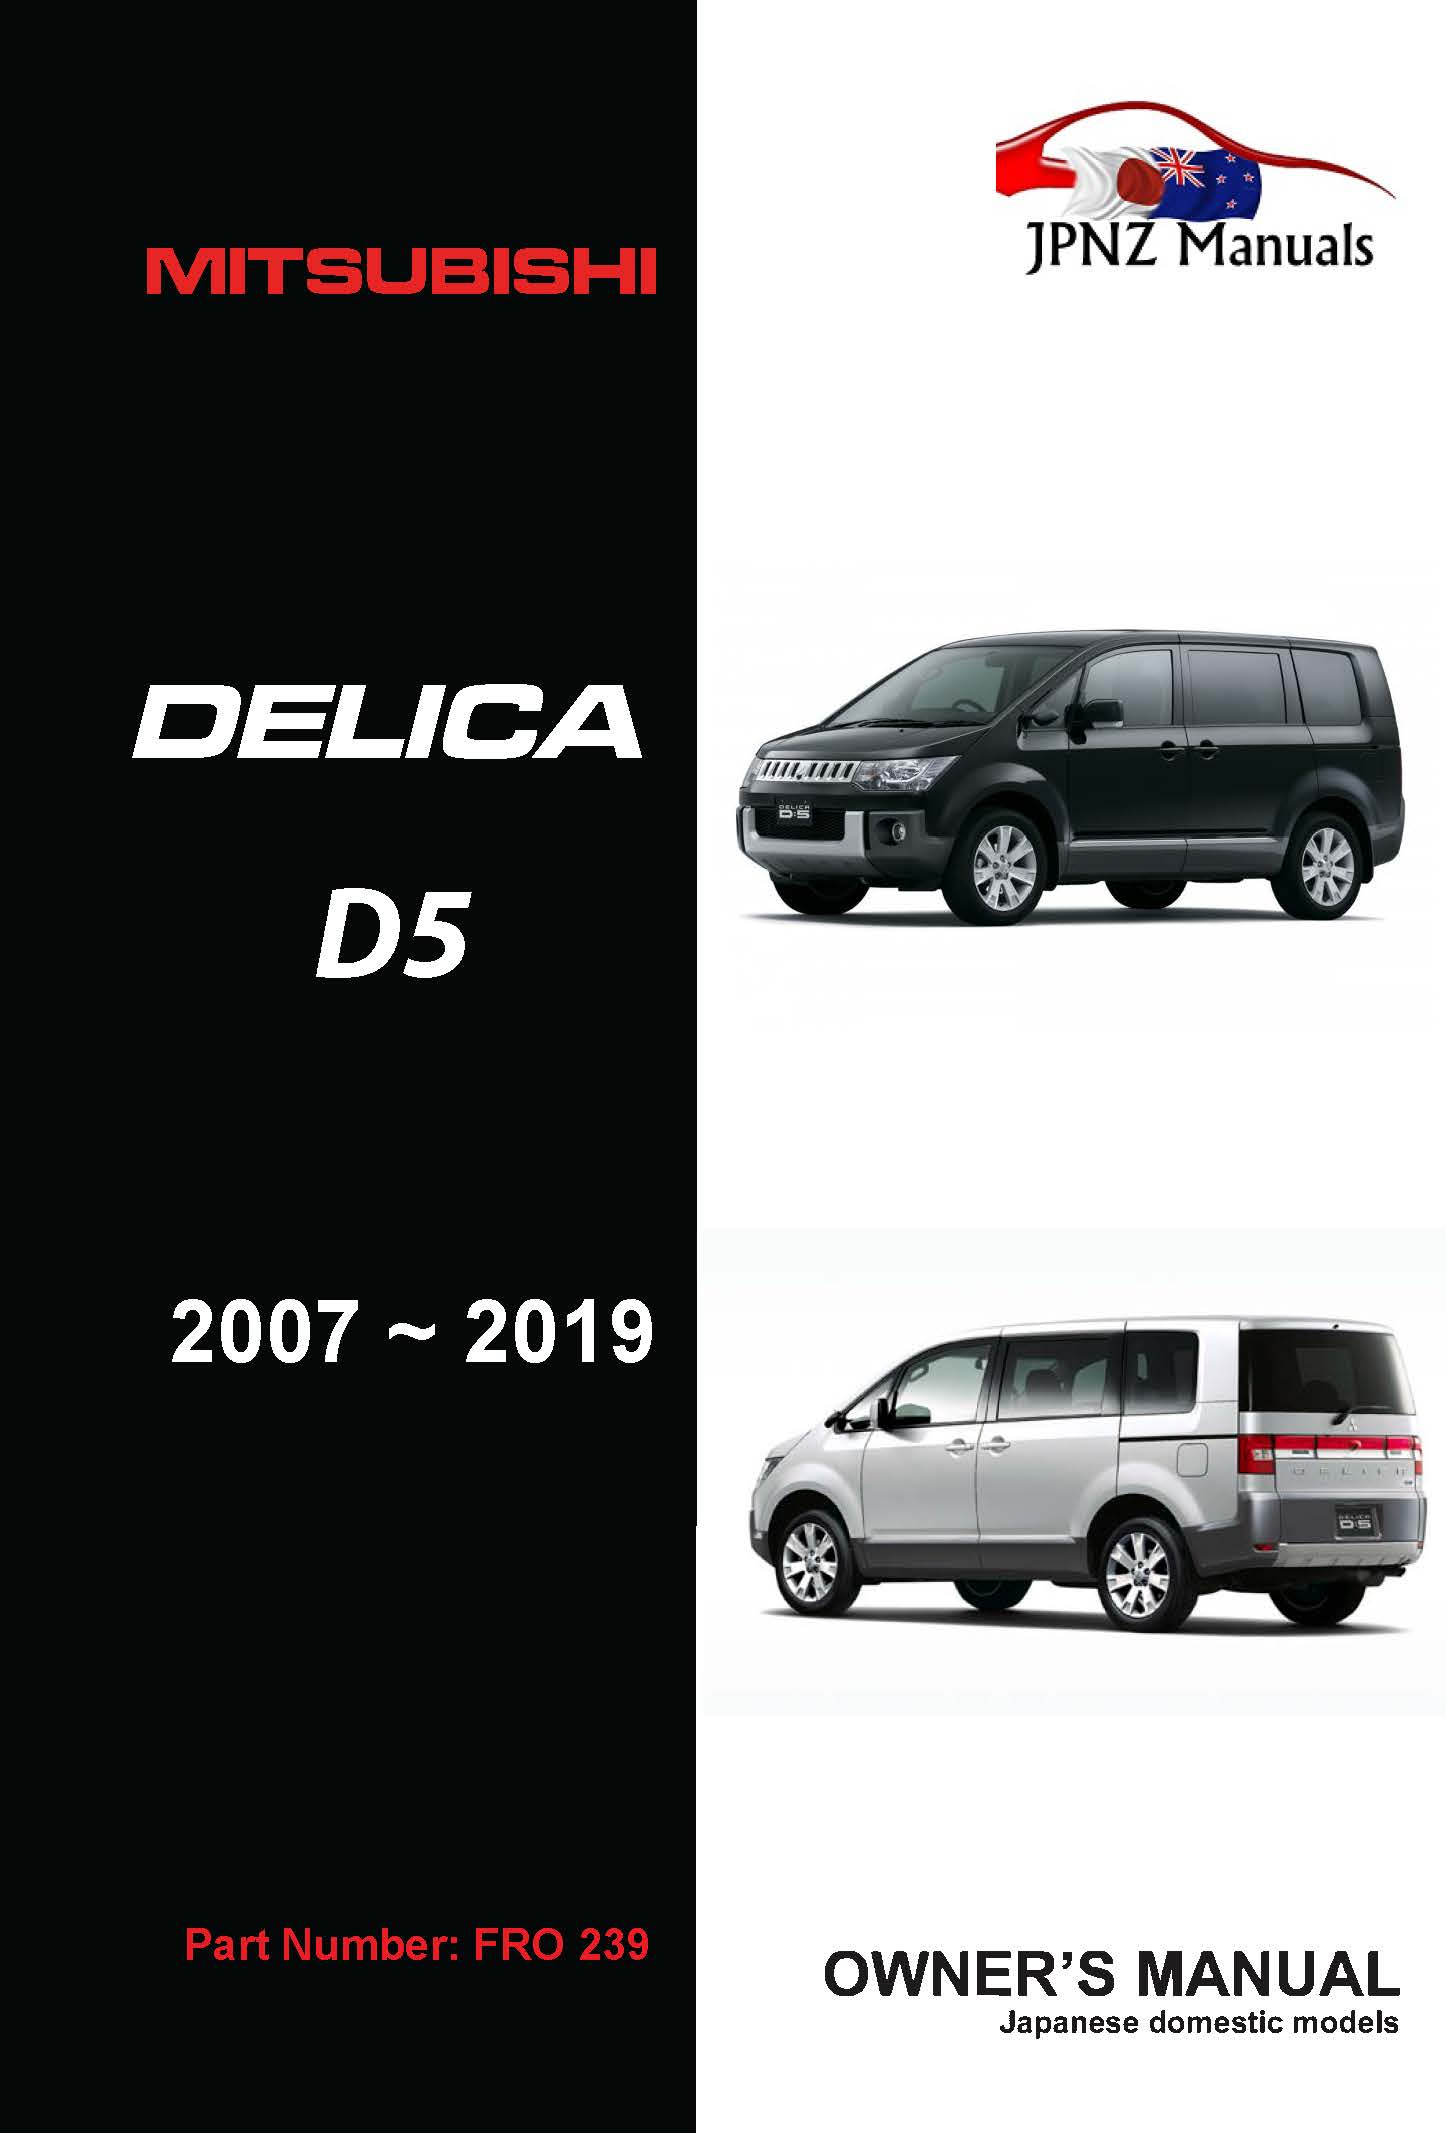 Mitsubishi – Delica D5 Owners User Manual In English | 2007– 2019